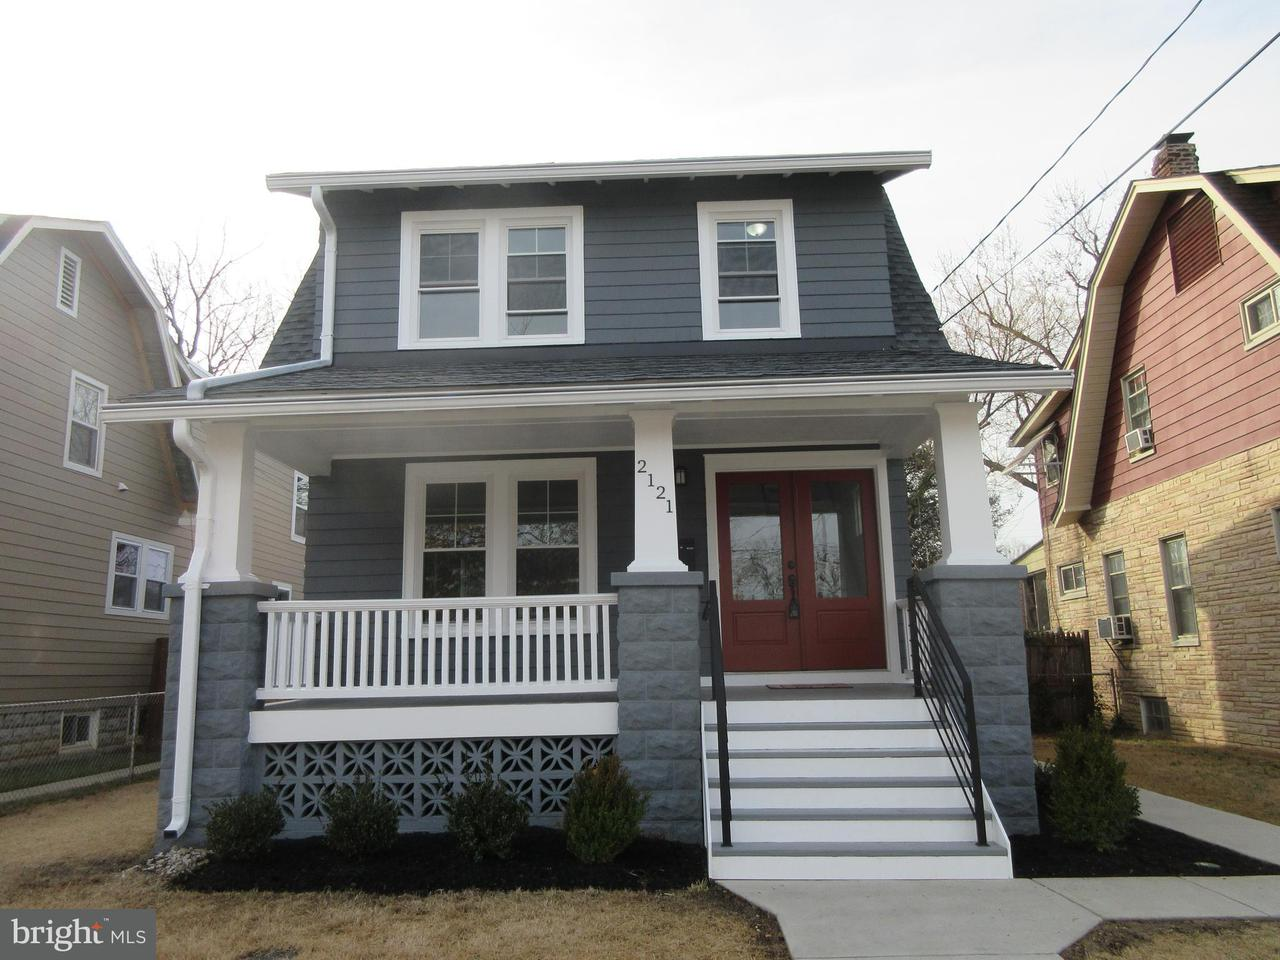 Single Family for Sale at 2121 Quincy St NE Washington, District Of Columbia 20018 United States